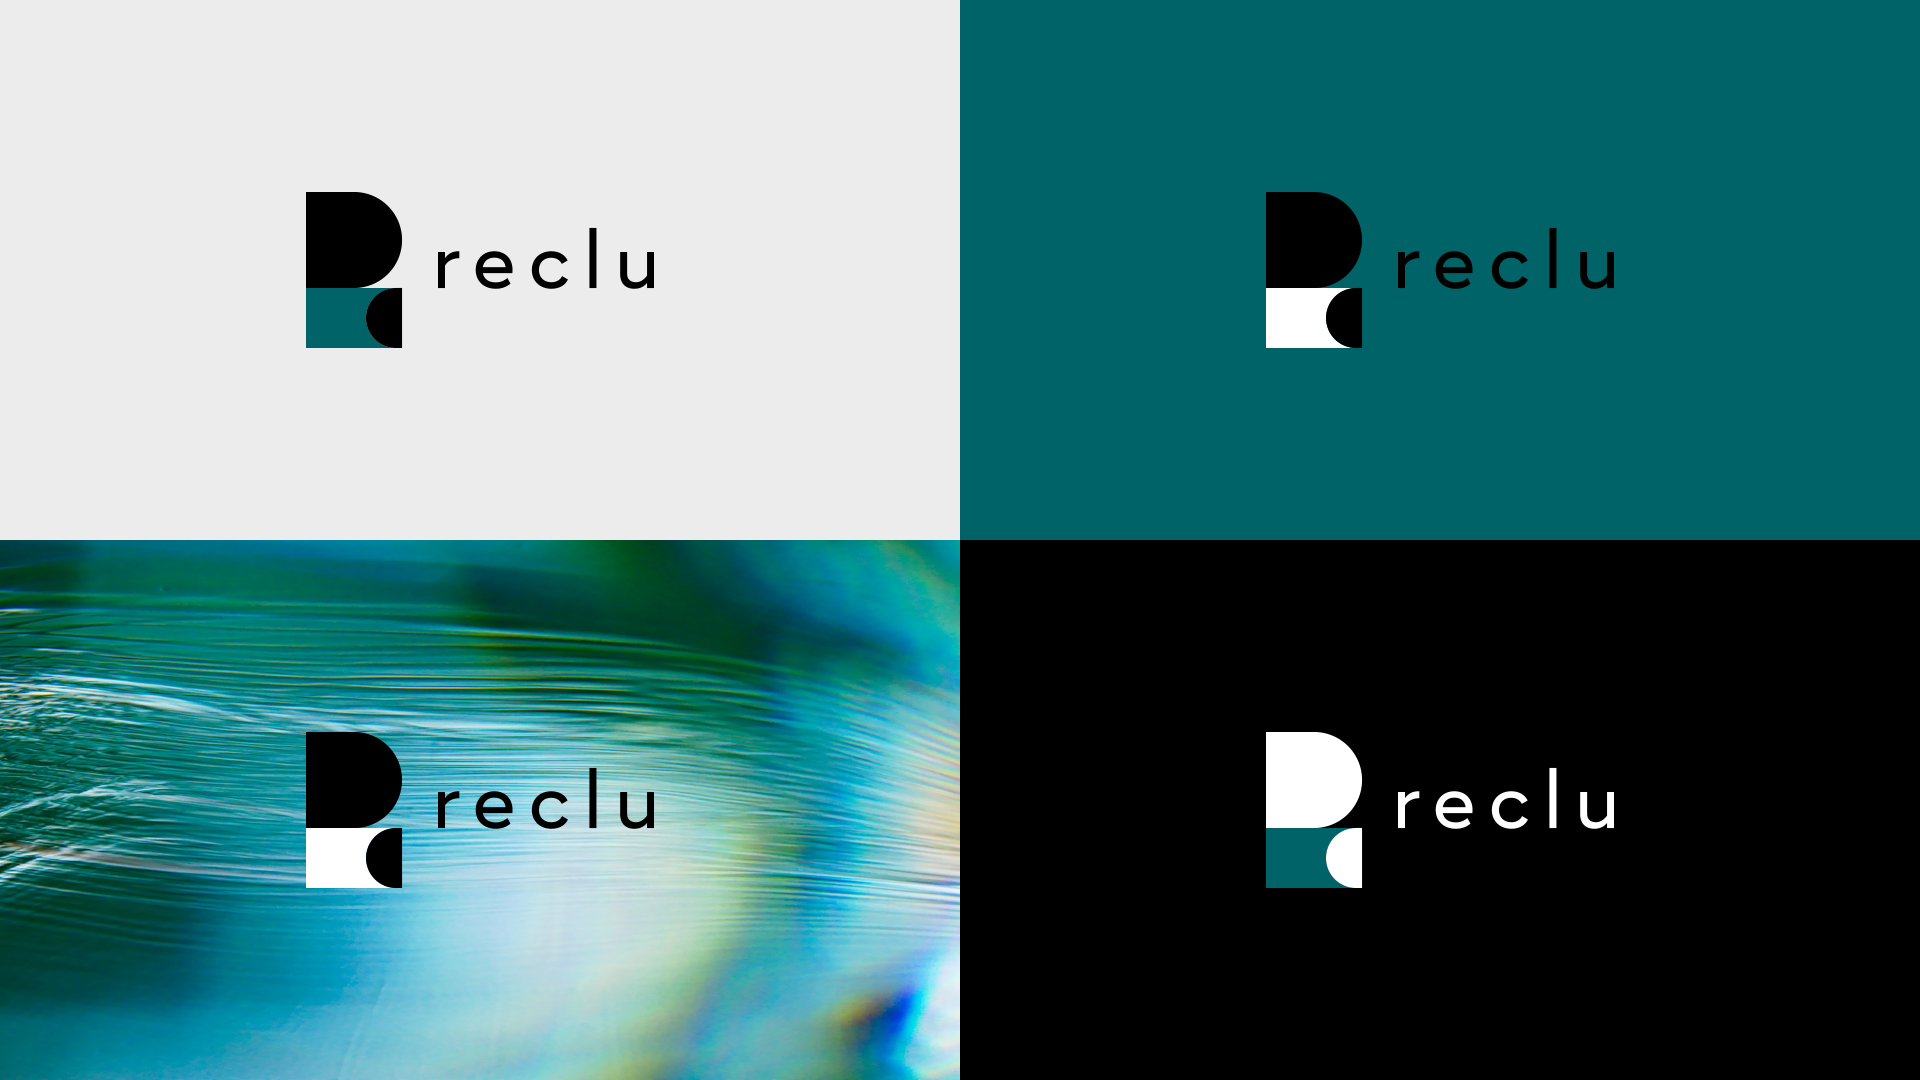 Reclu-Visual-Identity-by-Emtisquare-3